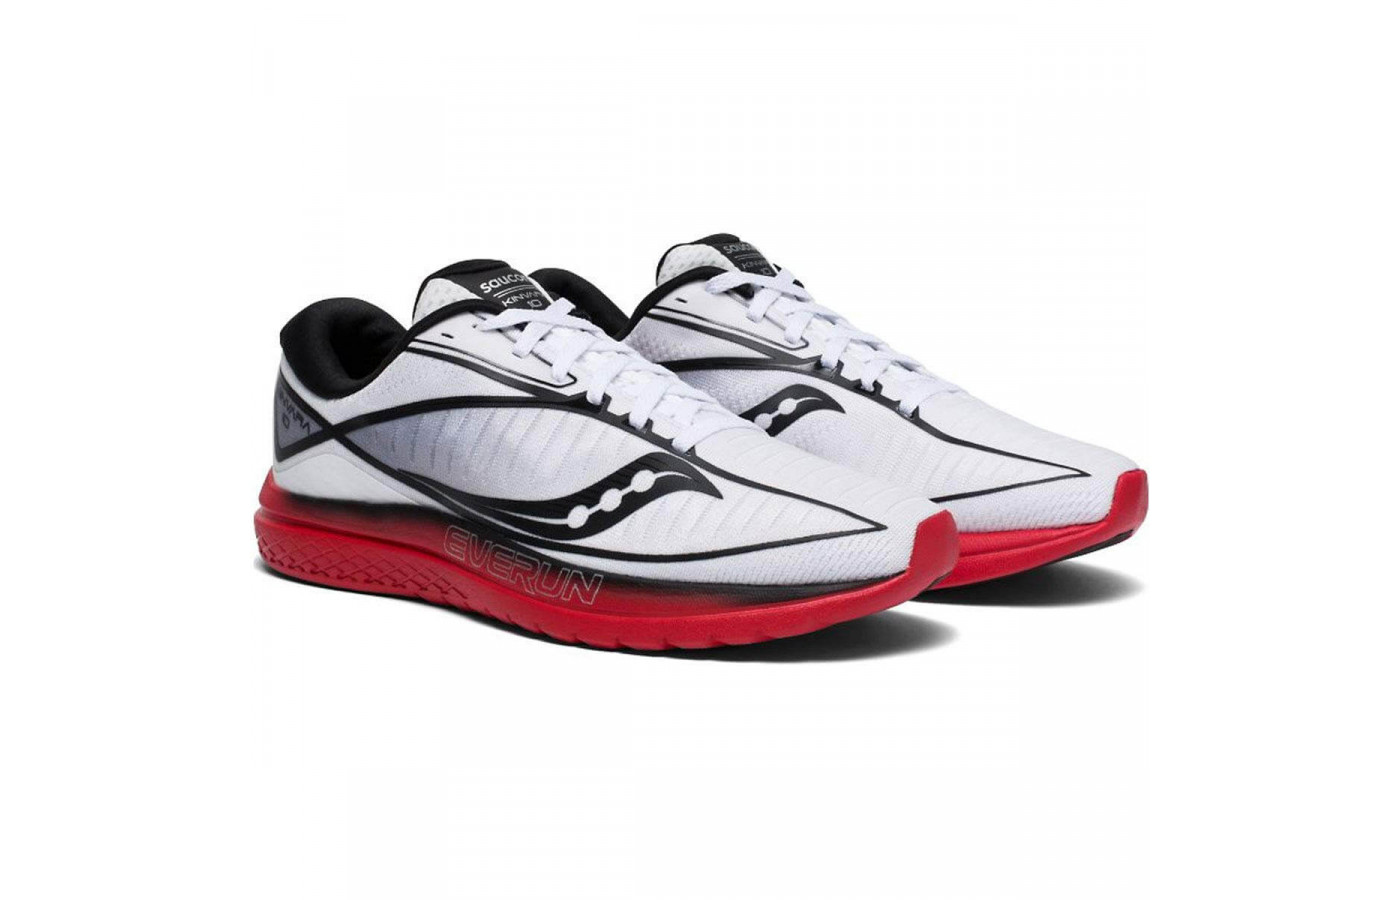 saucony kinvara 10 running shoes